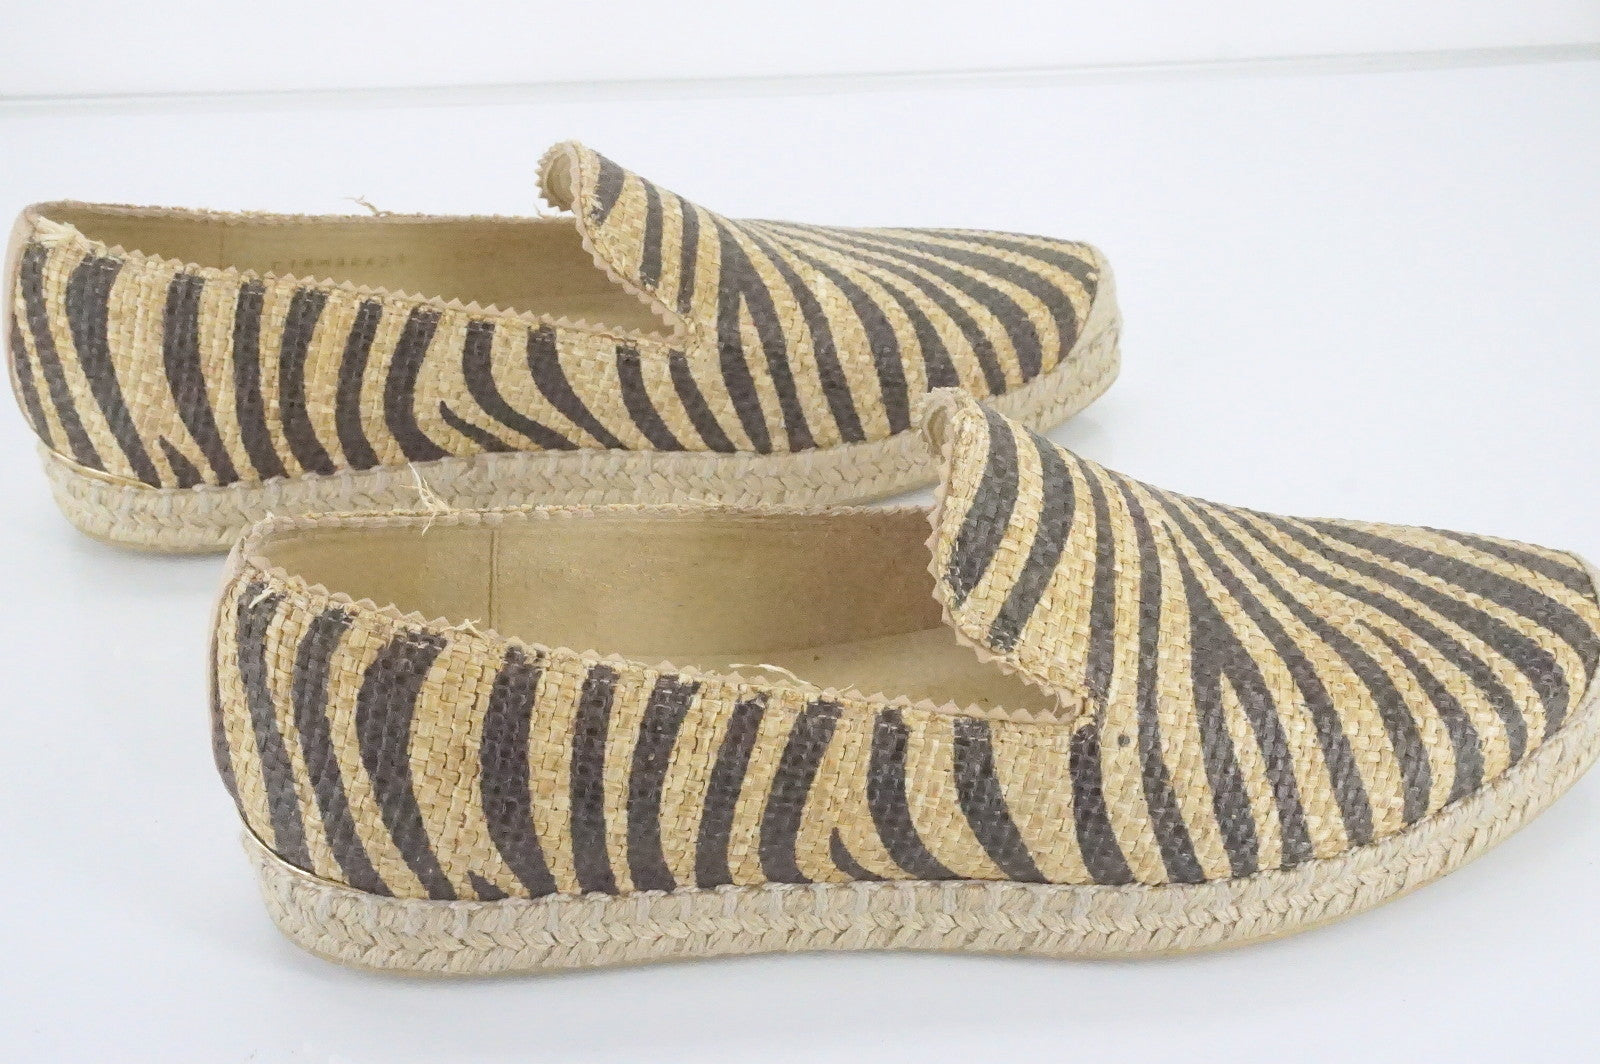 Stuart Weitzman Catalan Striped Espadrille Flat Loafers size 9.5 New $265 SZ Toe